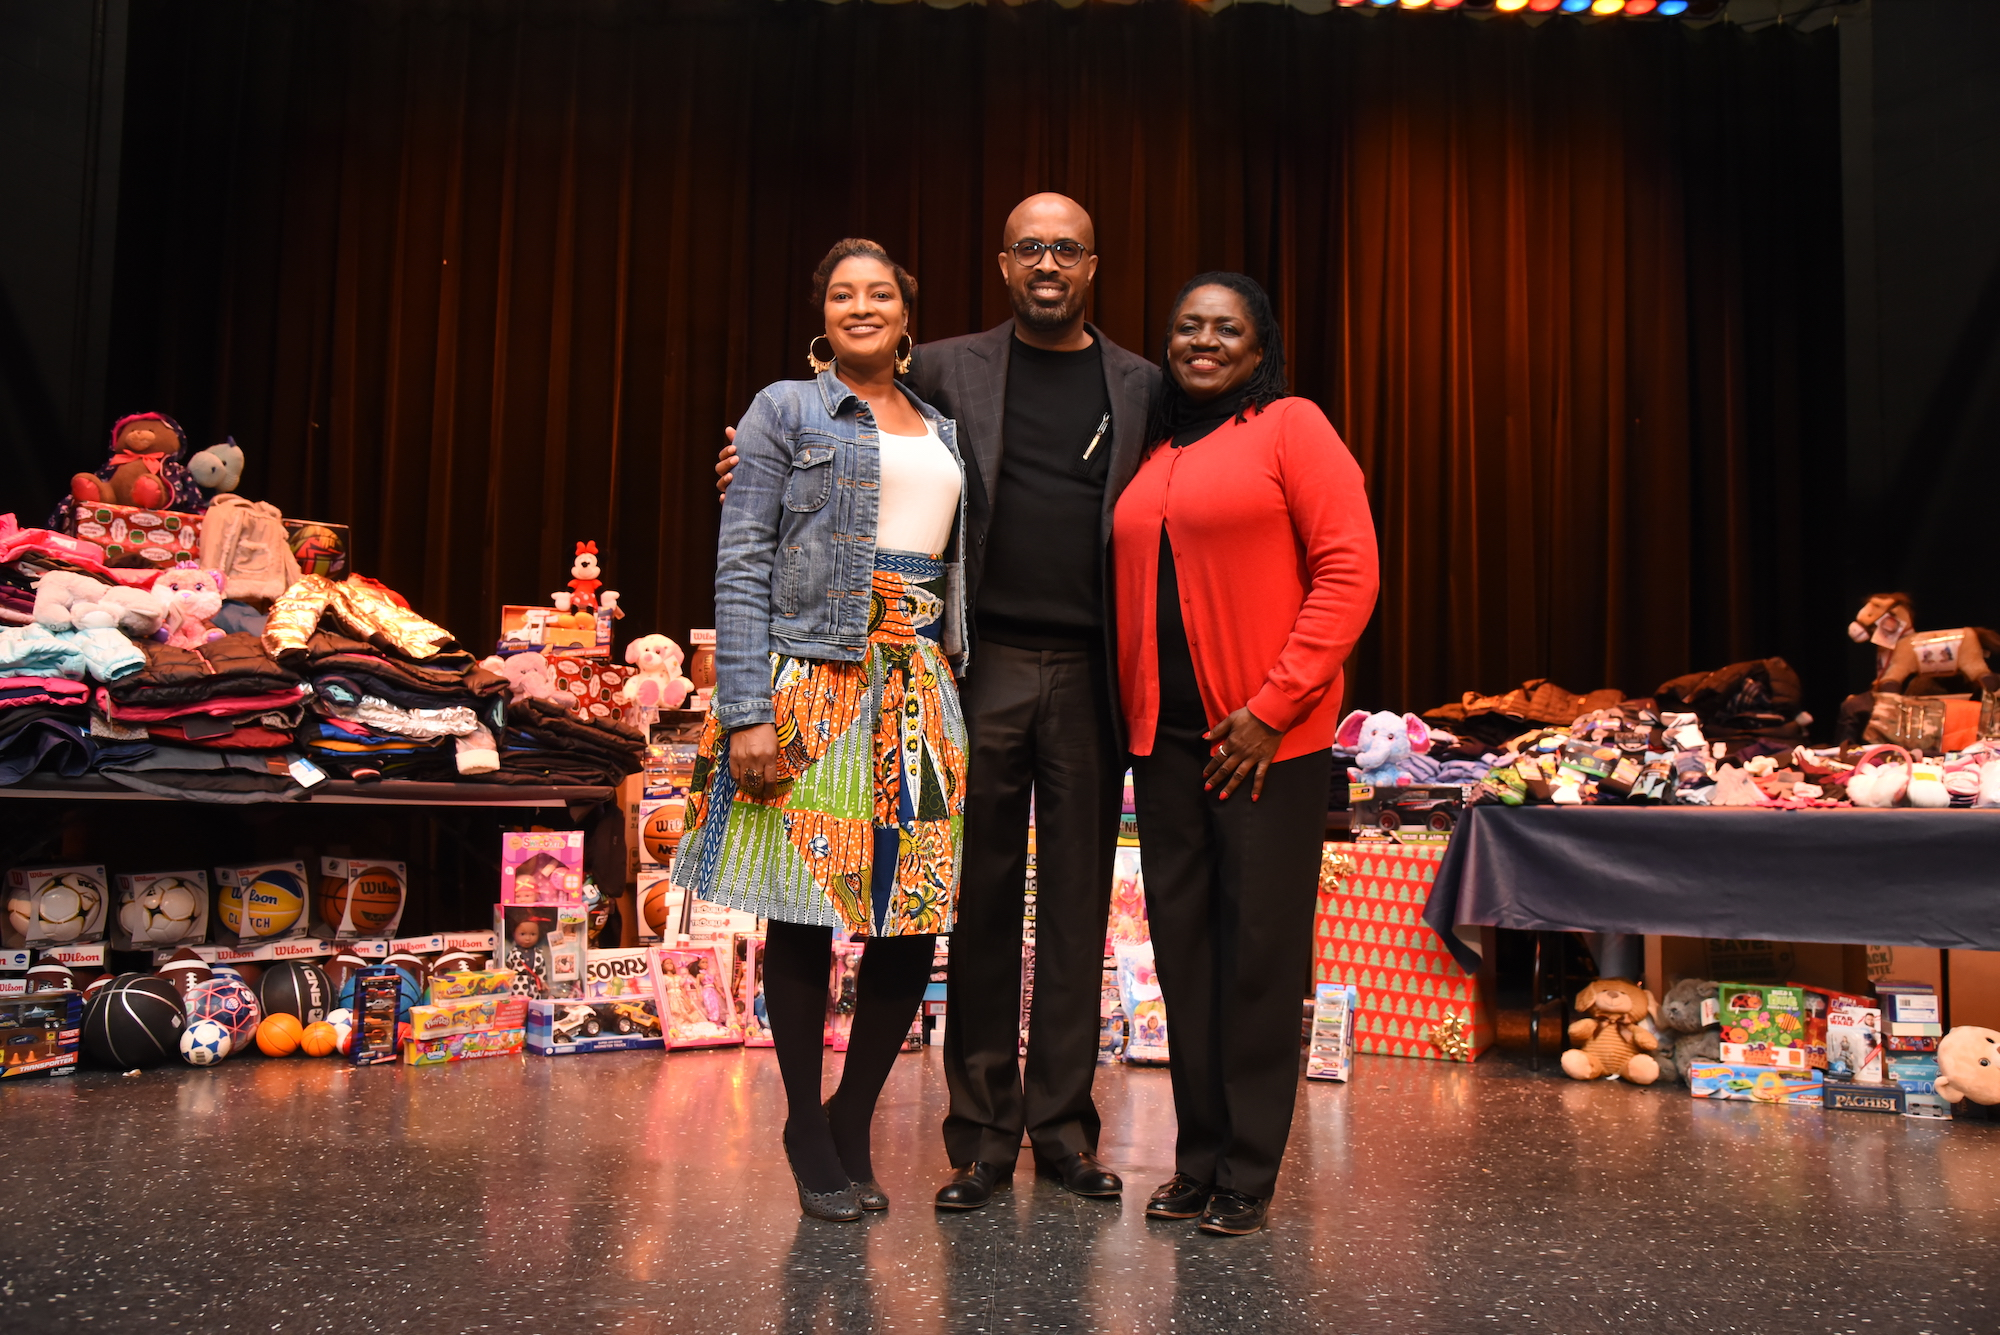 Lee McShann Elementary Gift Giveaway and Partnership